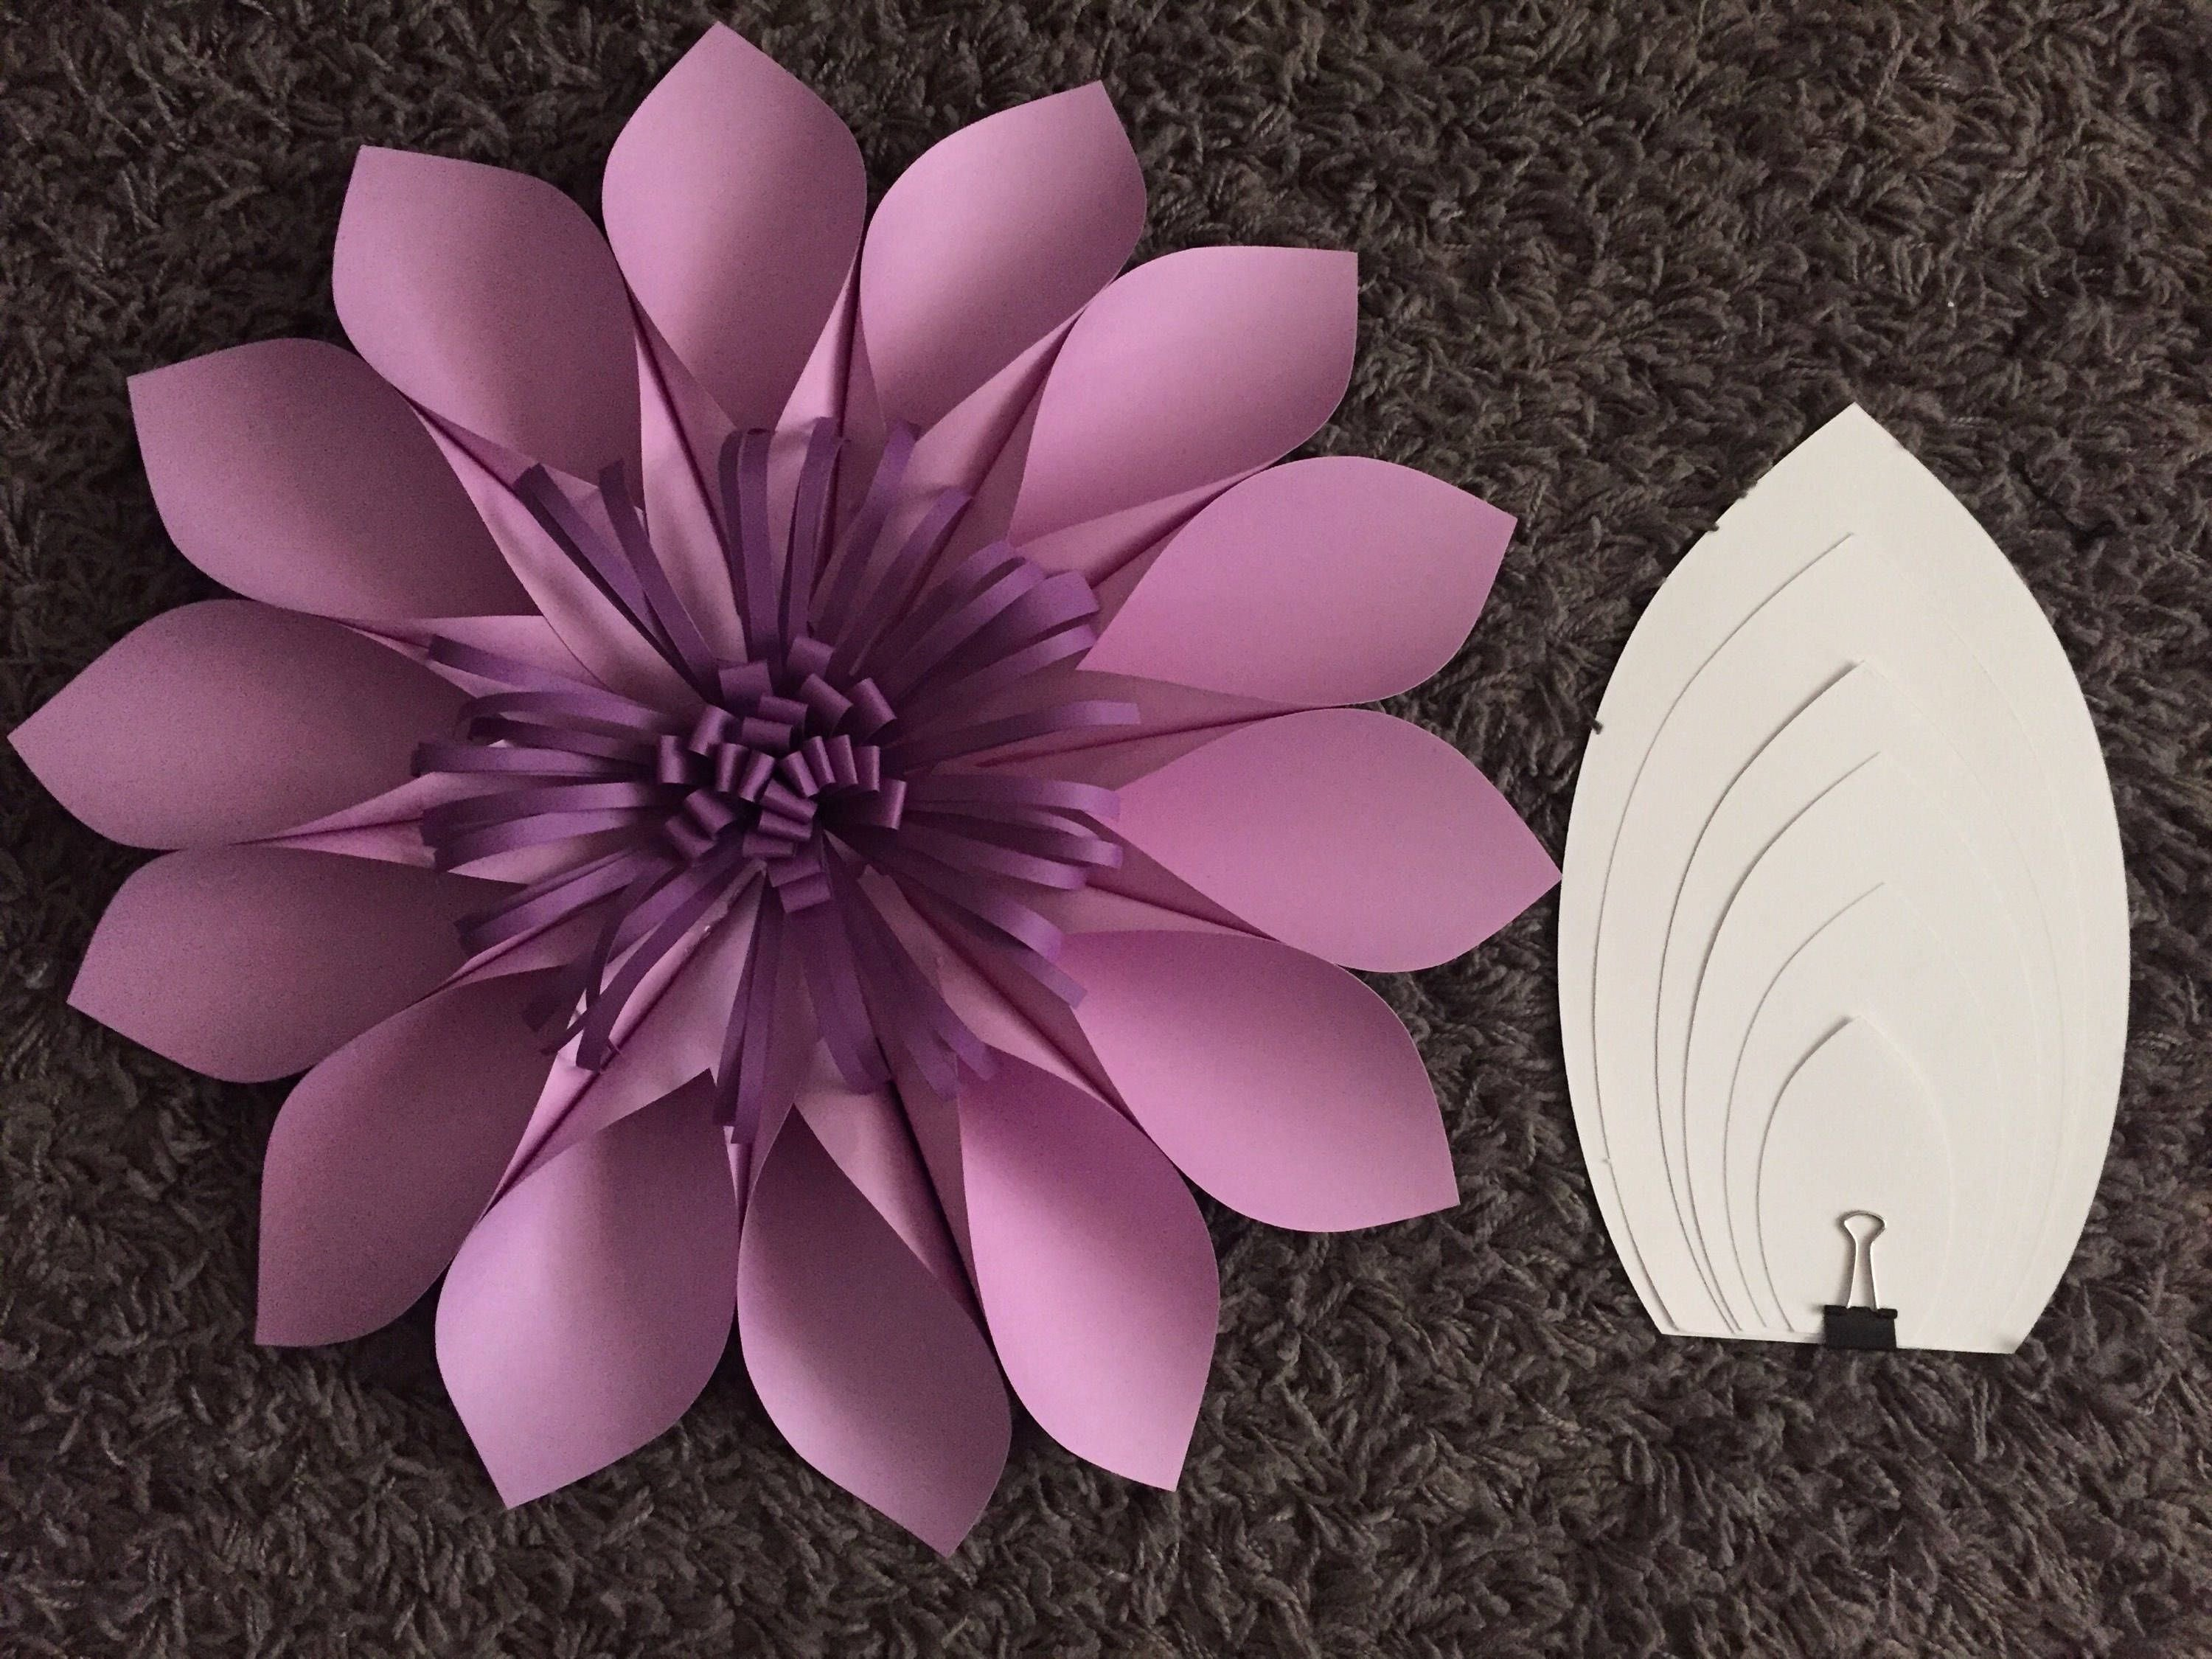 Template for Paper Flowers Awesome Diy Paper Flower Template 2 Paper Flower Backdrop Hard